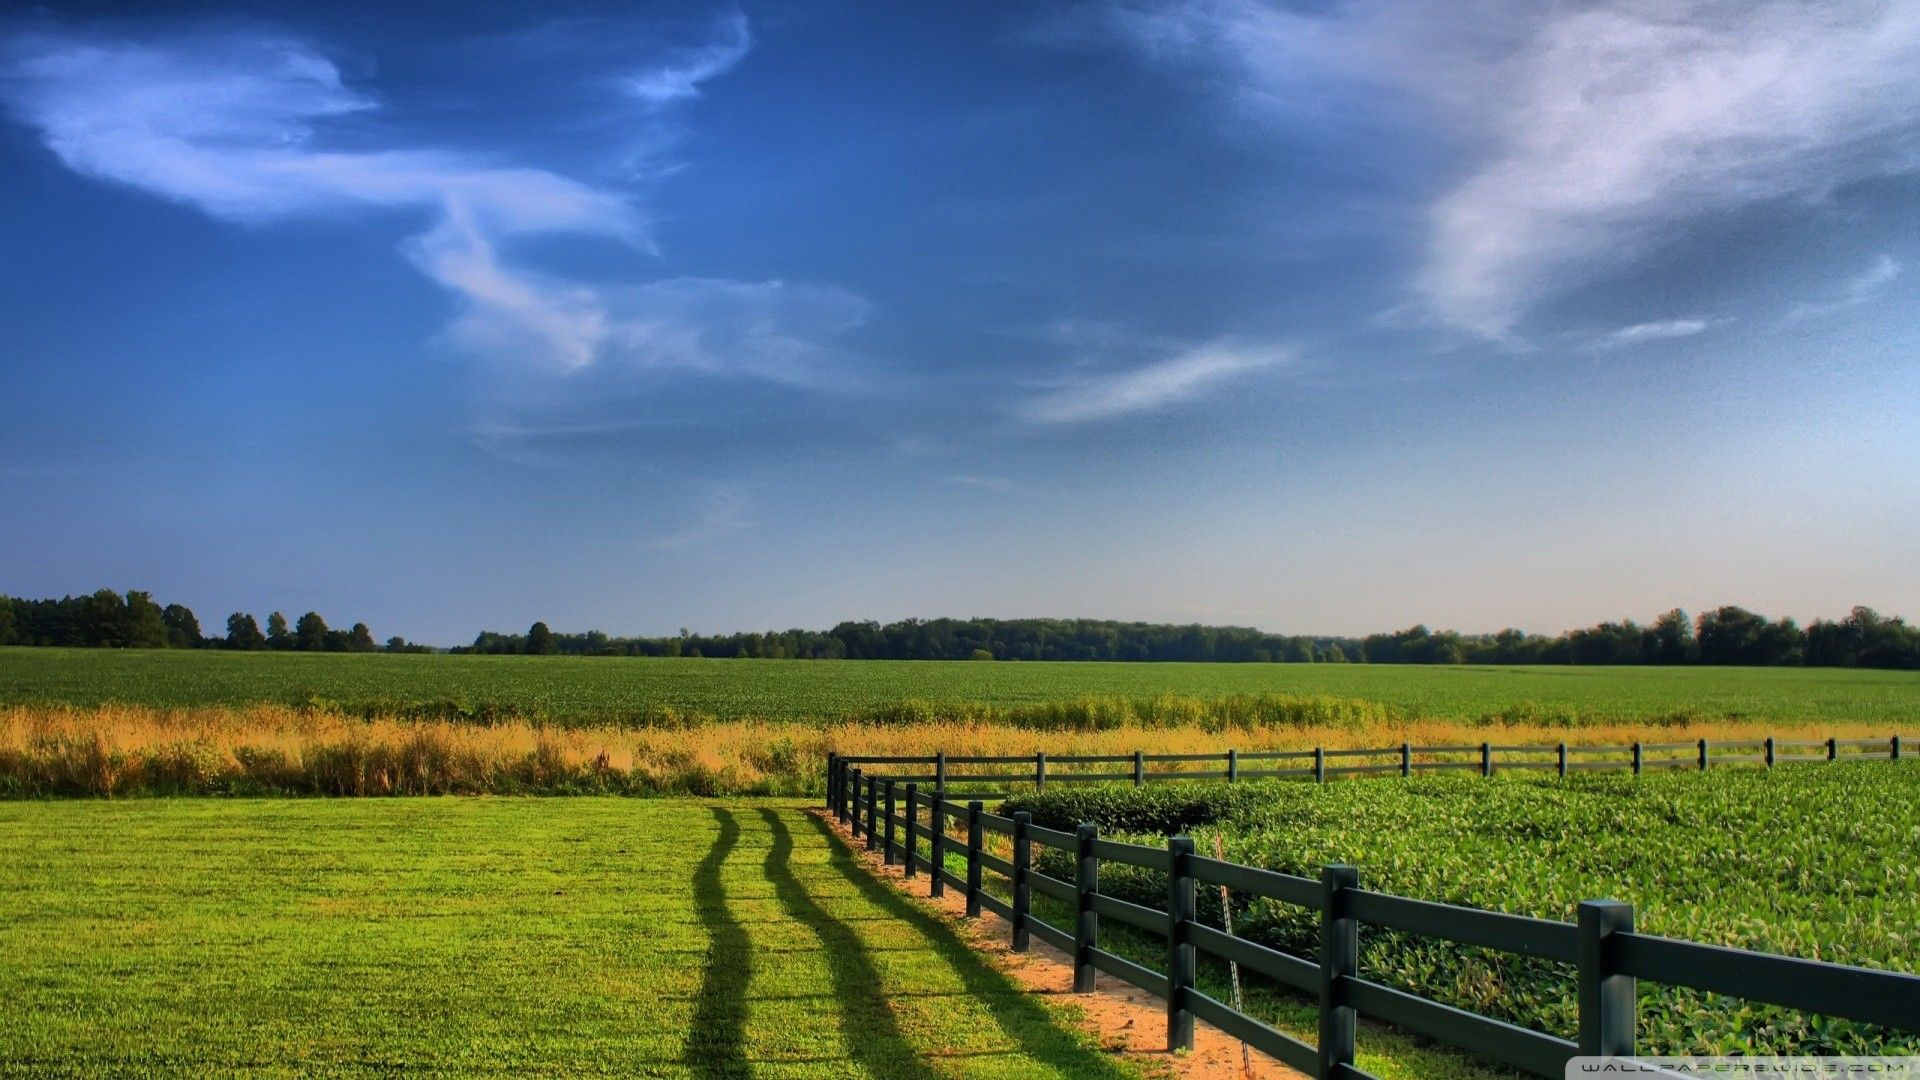 Farm Wallpapers   Top Farm Backgrounds   WallpaperAccess 1920x1080